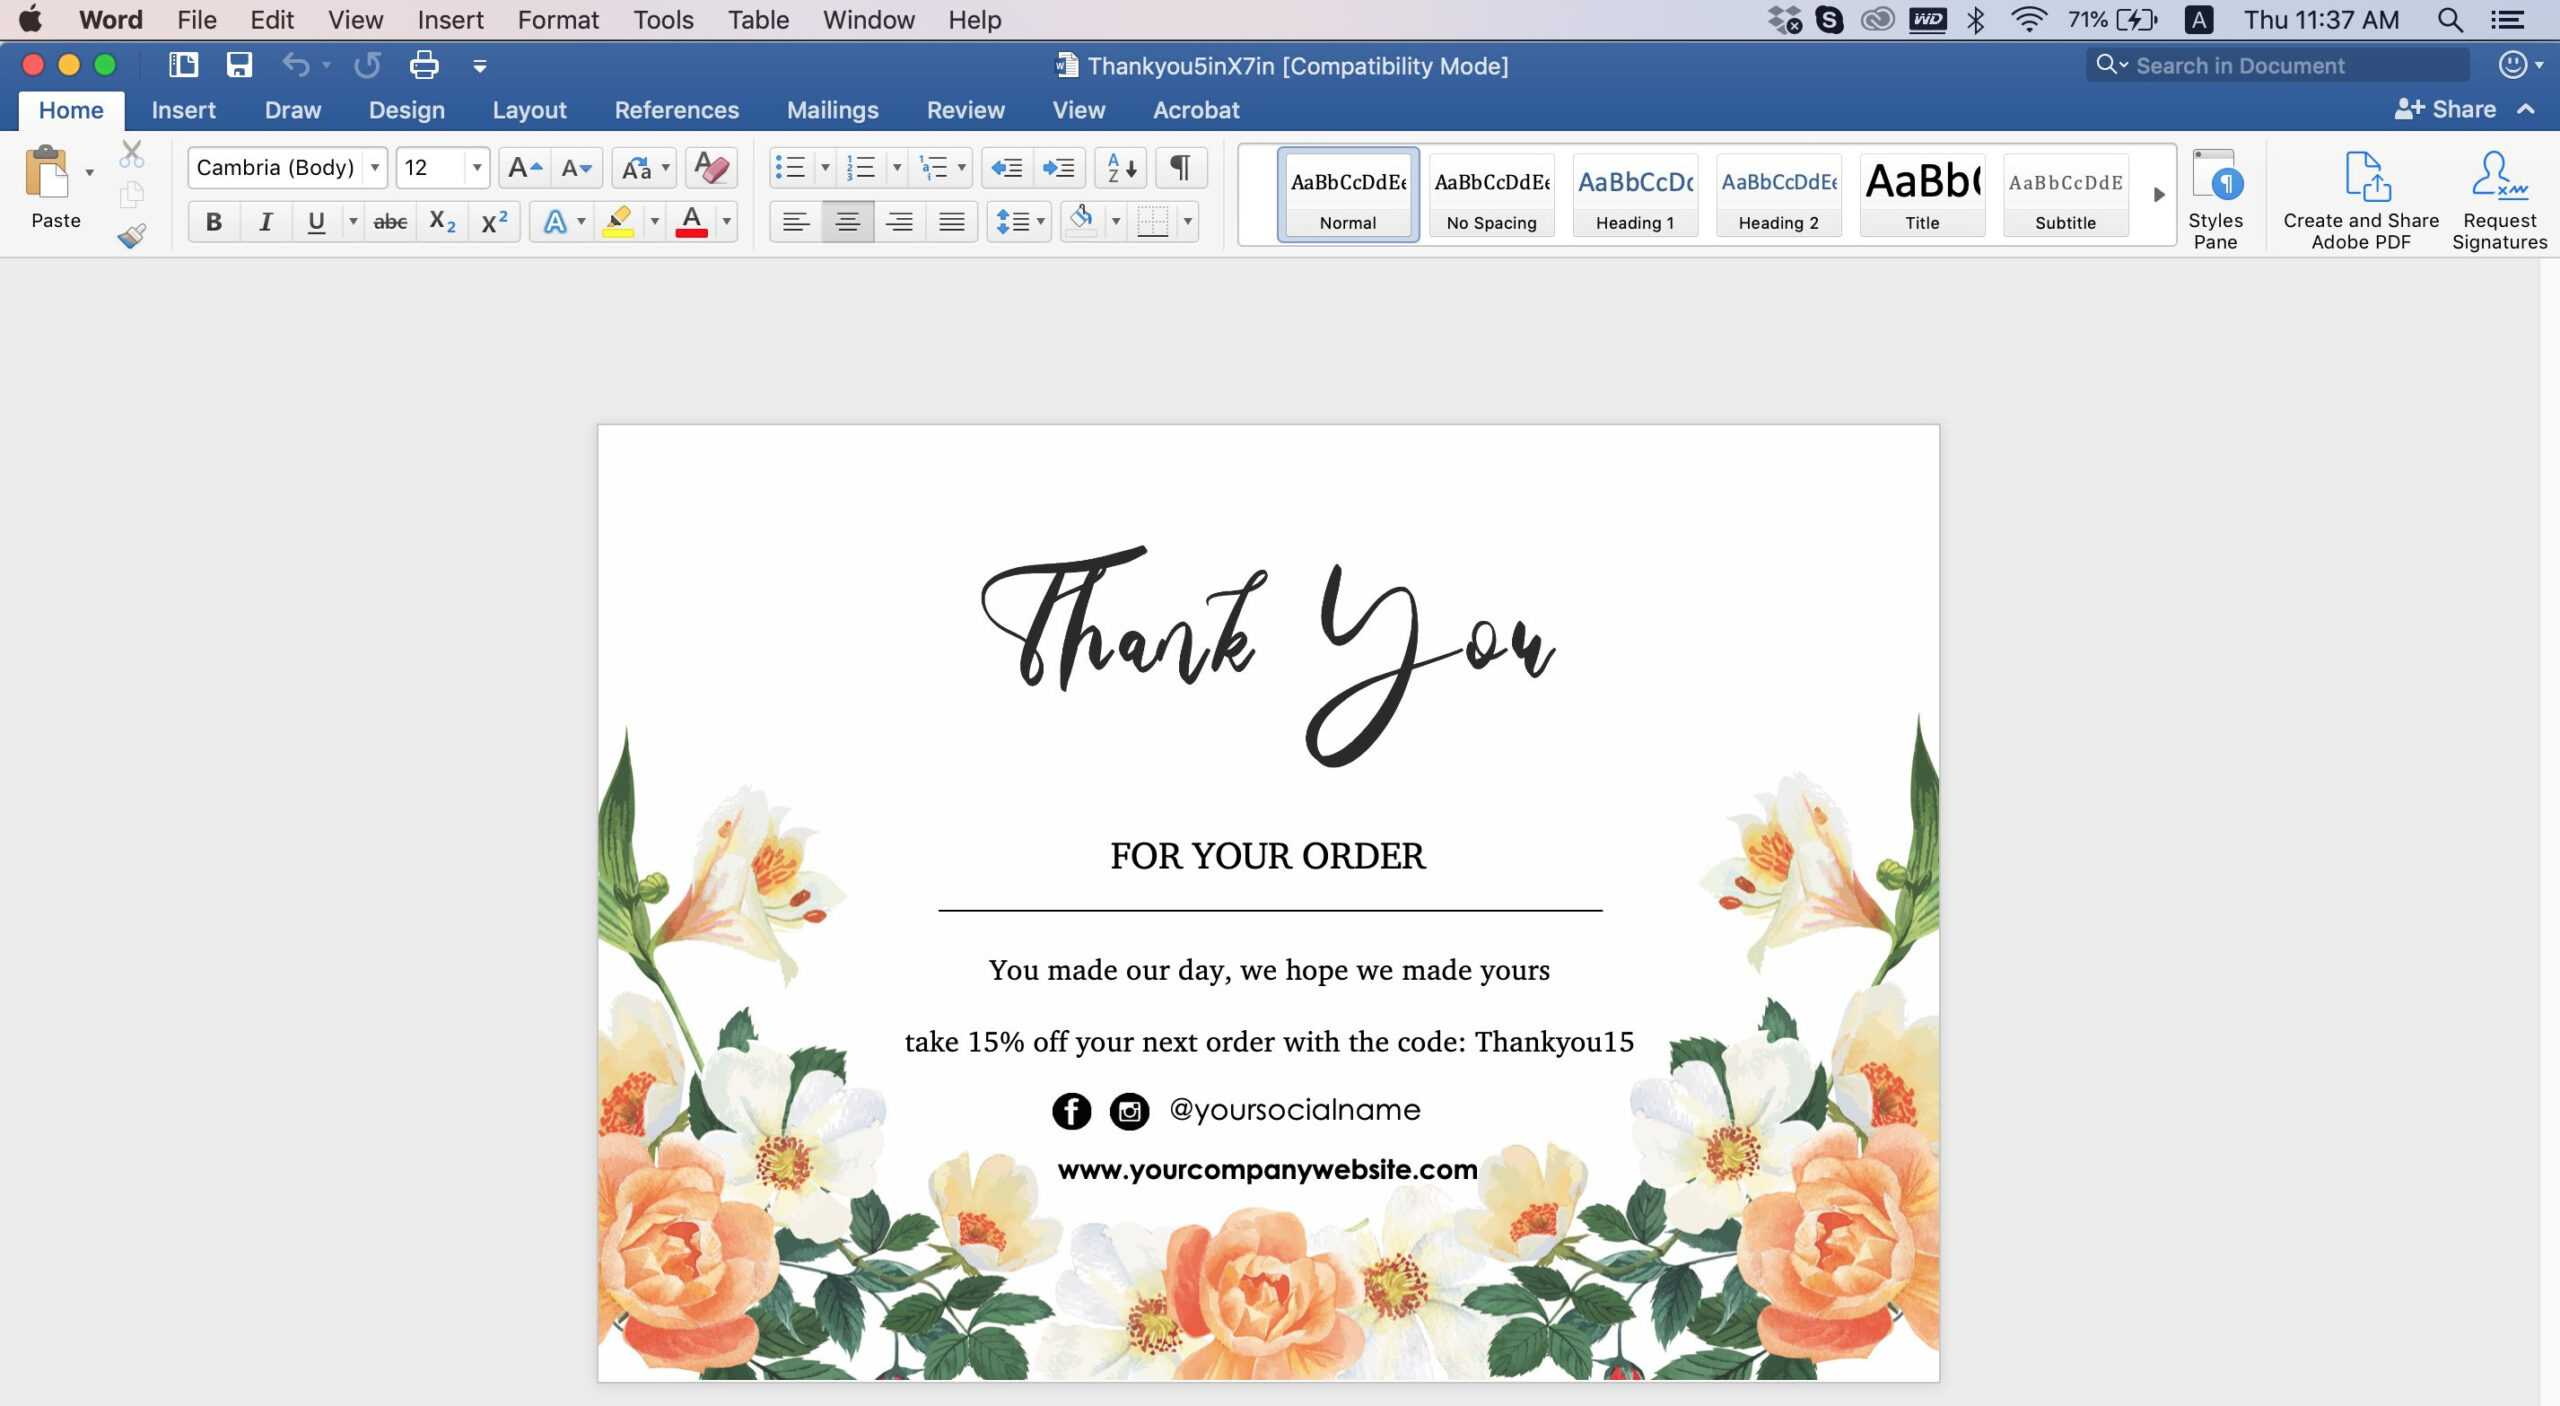 009 Editable Thank You Post Card Template Word Top Ideas In Thank You Card Template Word